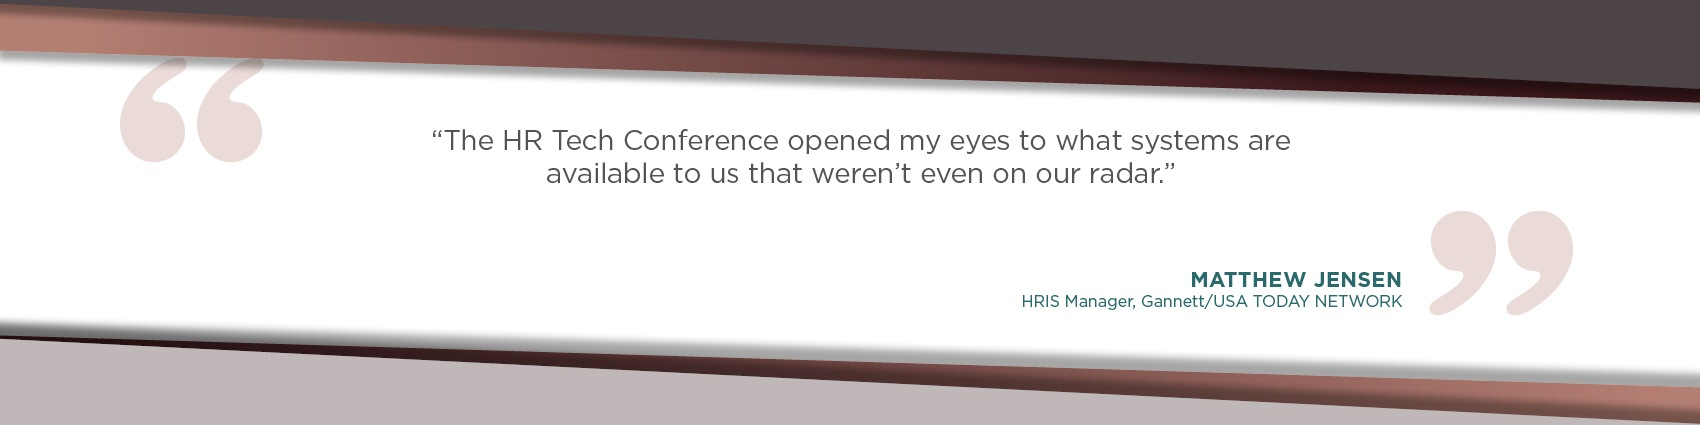 The HR Tech Conference opened my eyes to what systems are available to us that weren't even on our radar. -Matthew Jensen